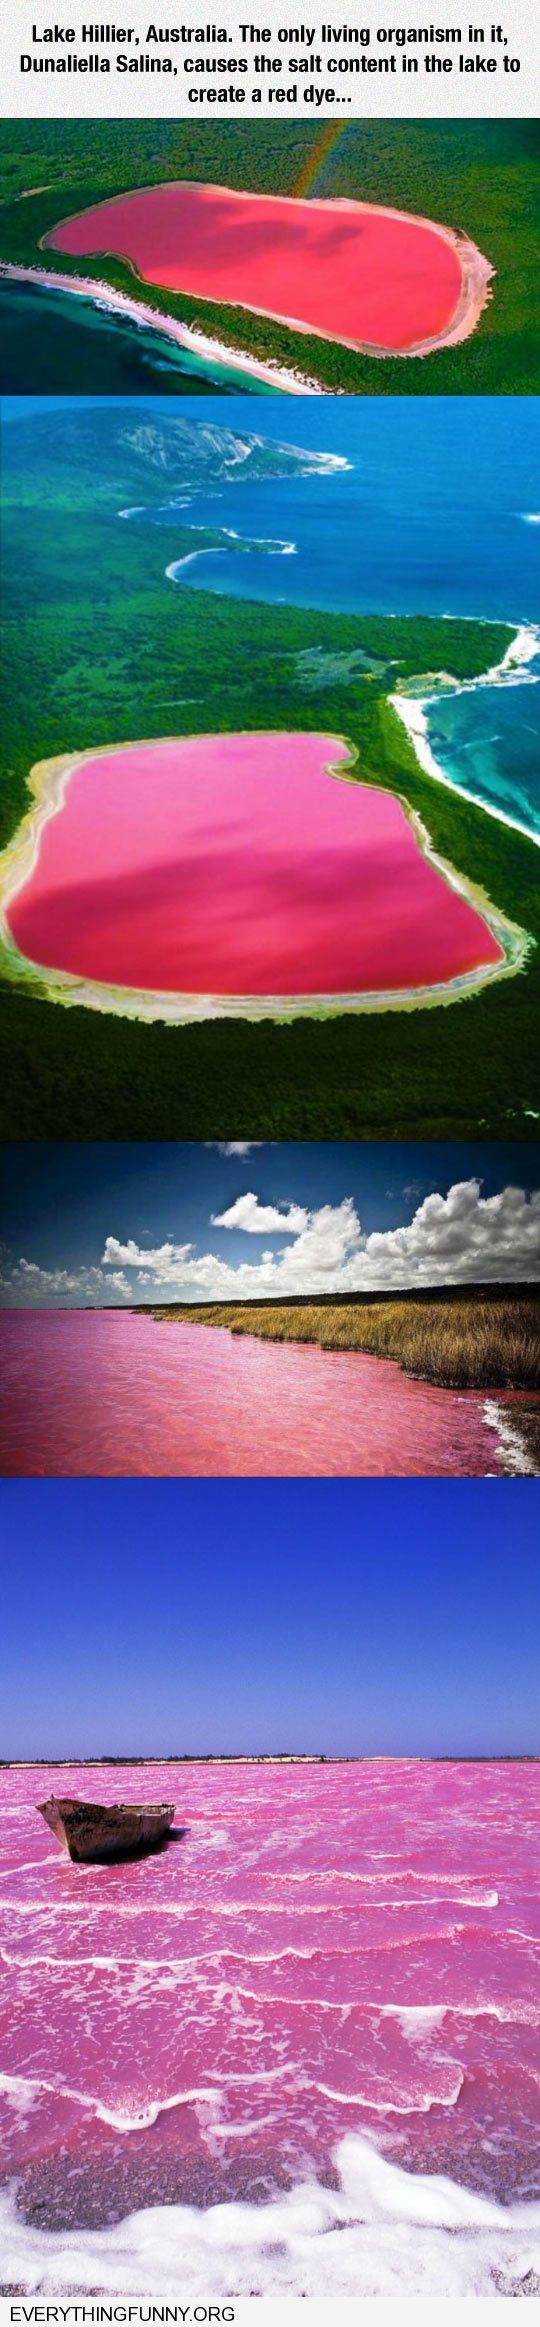 funny photo lake hillier Australia red pink lake